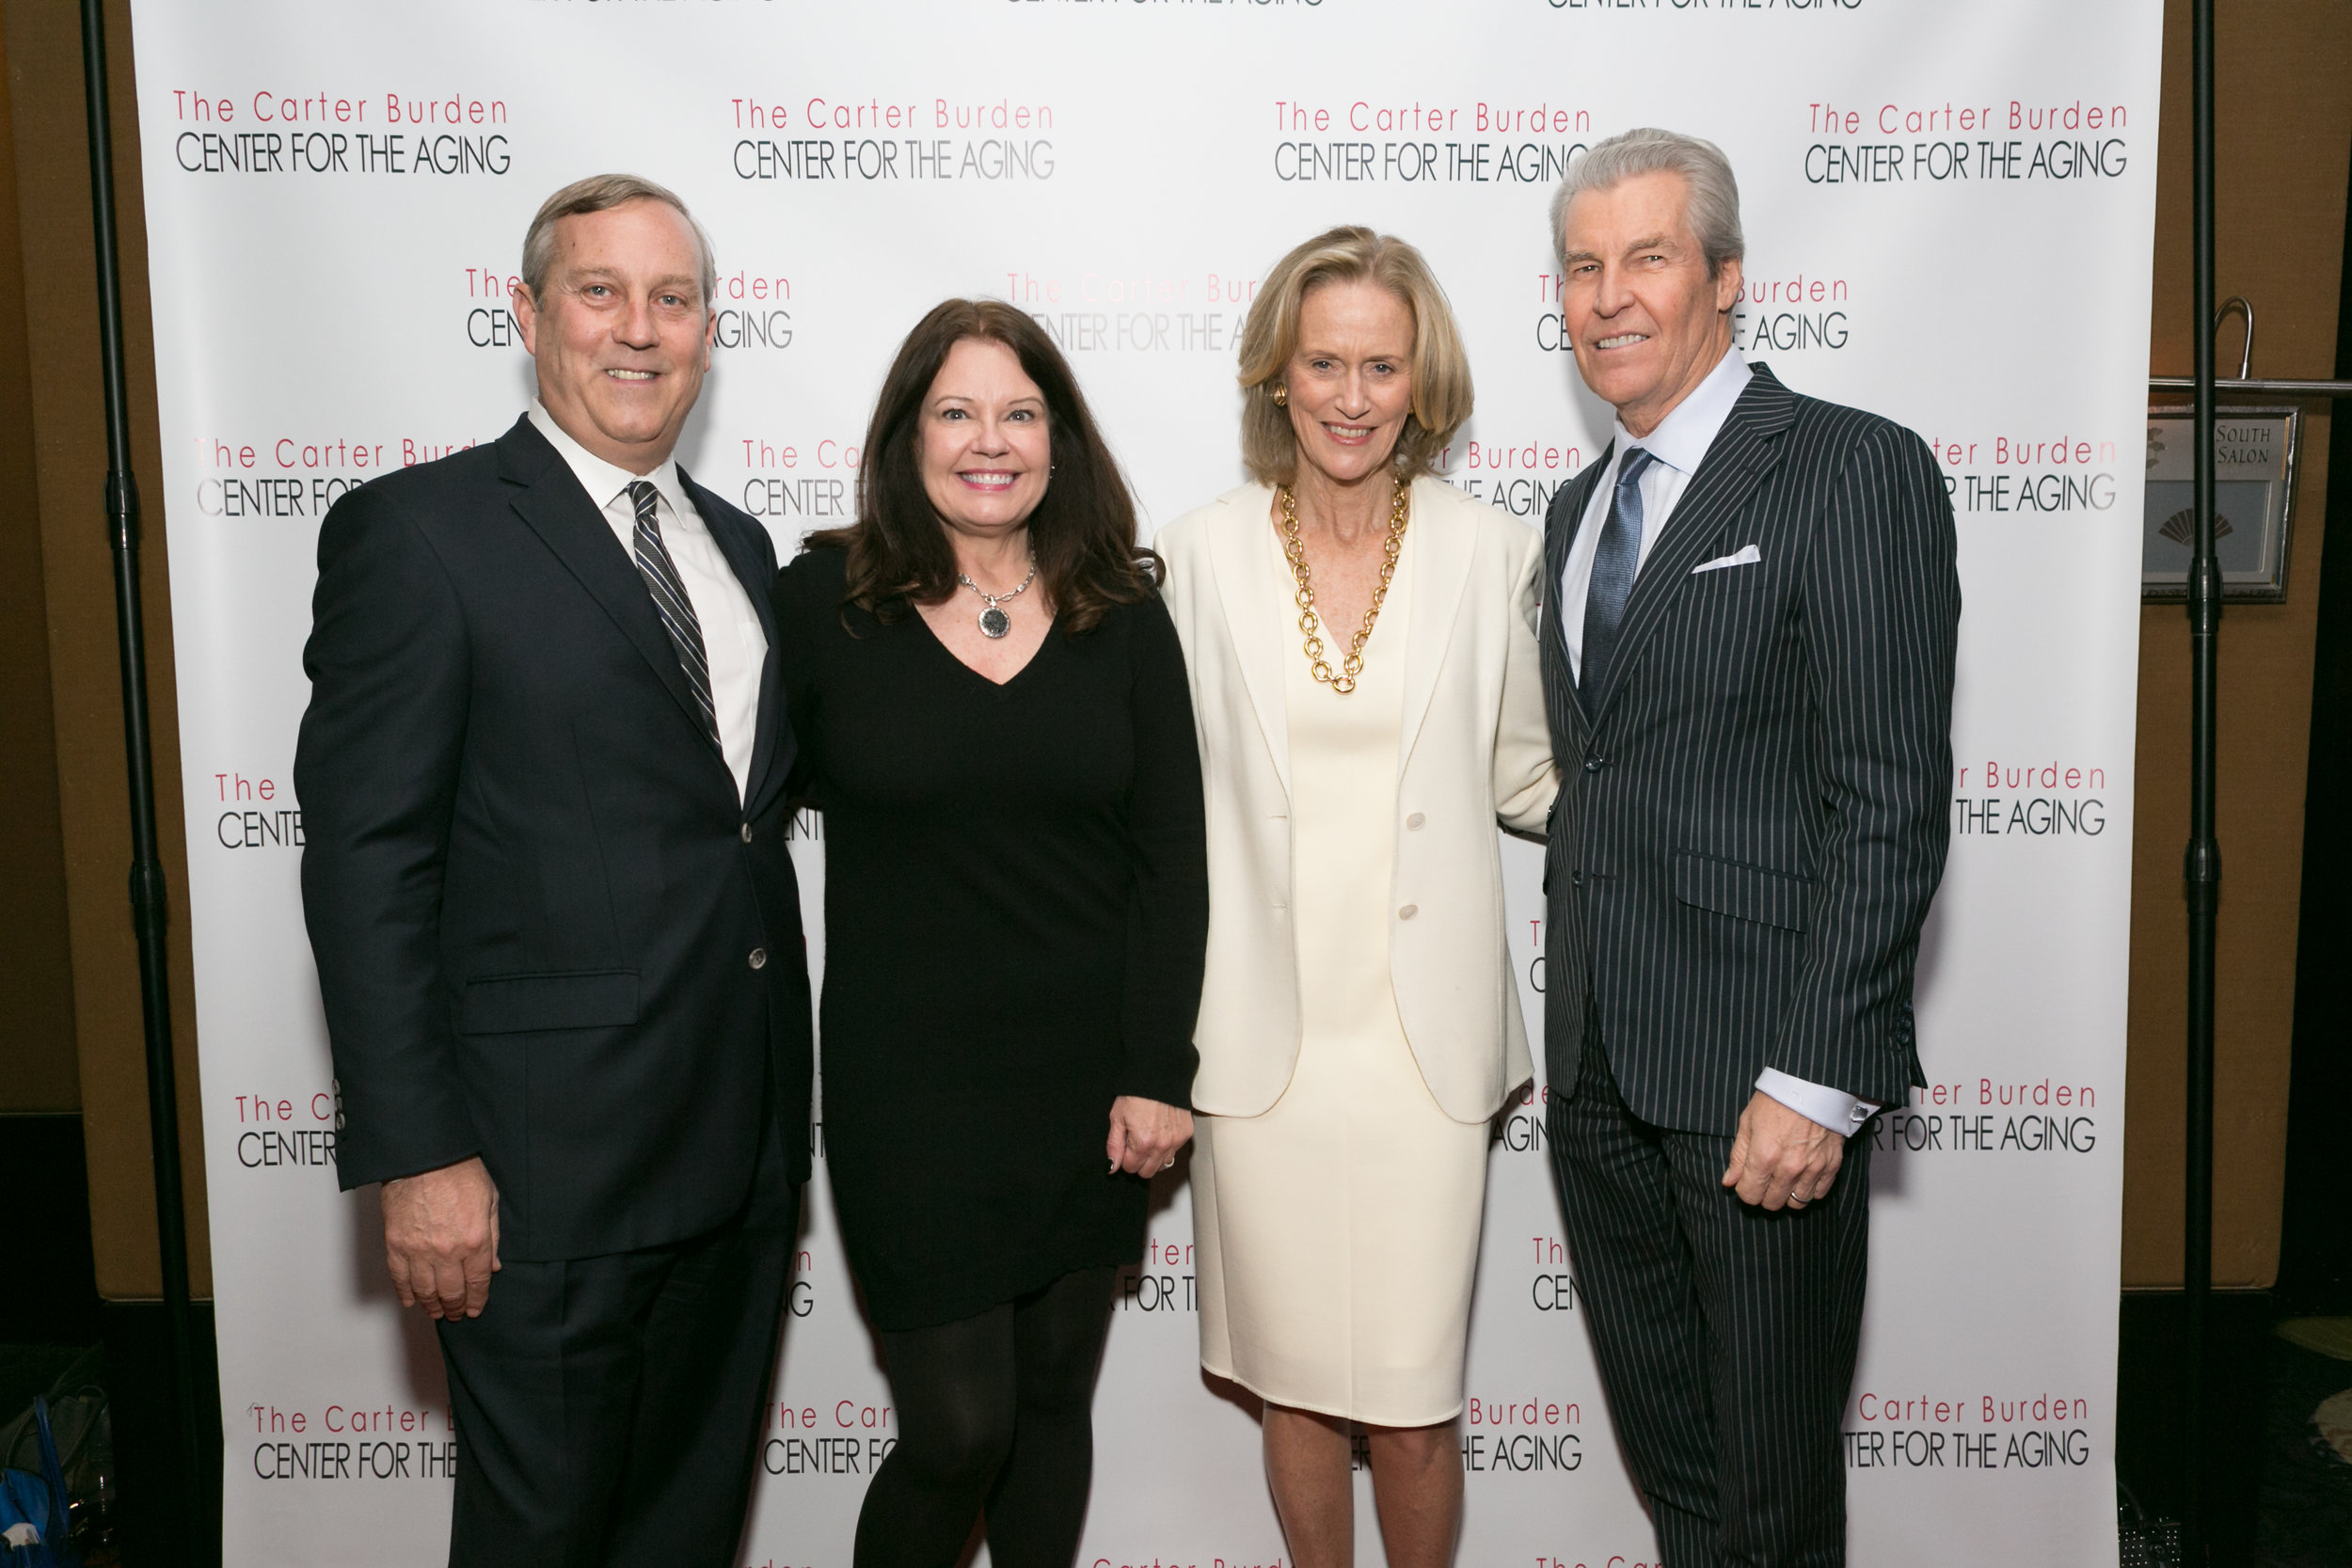 Peter Sachse   , Chief Growth Officer, Macy's, 2016 Business Leadership Honoree and his wife  Jini Sachse; Susan L. Burden , Board Member, Carter Burden Network;  Terry J. Lundgren , CEO, Macy's Inc.